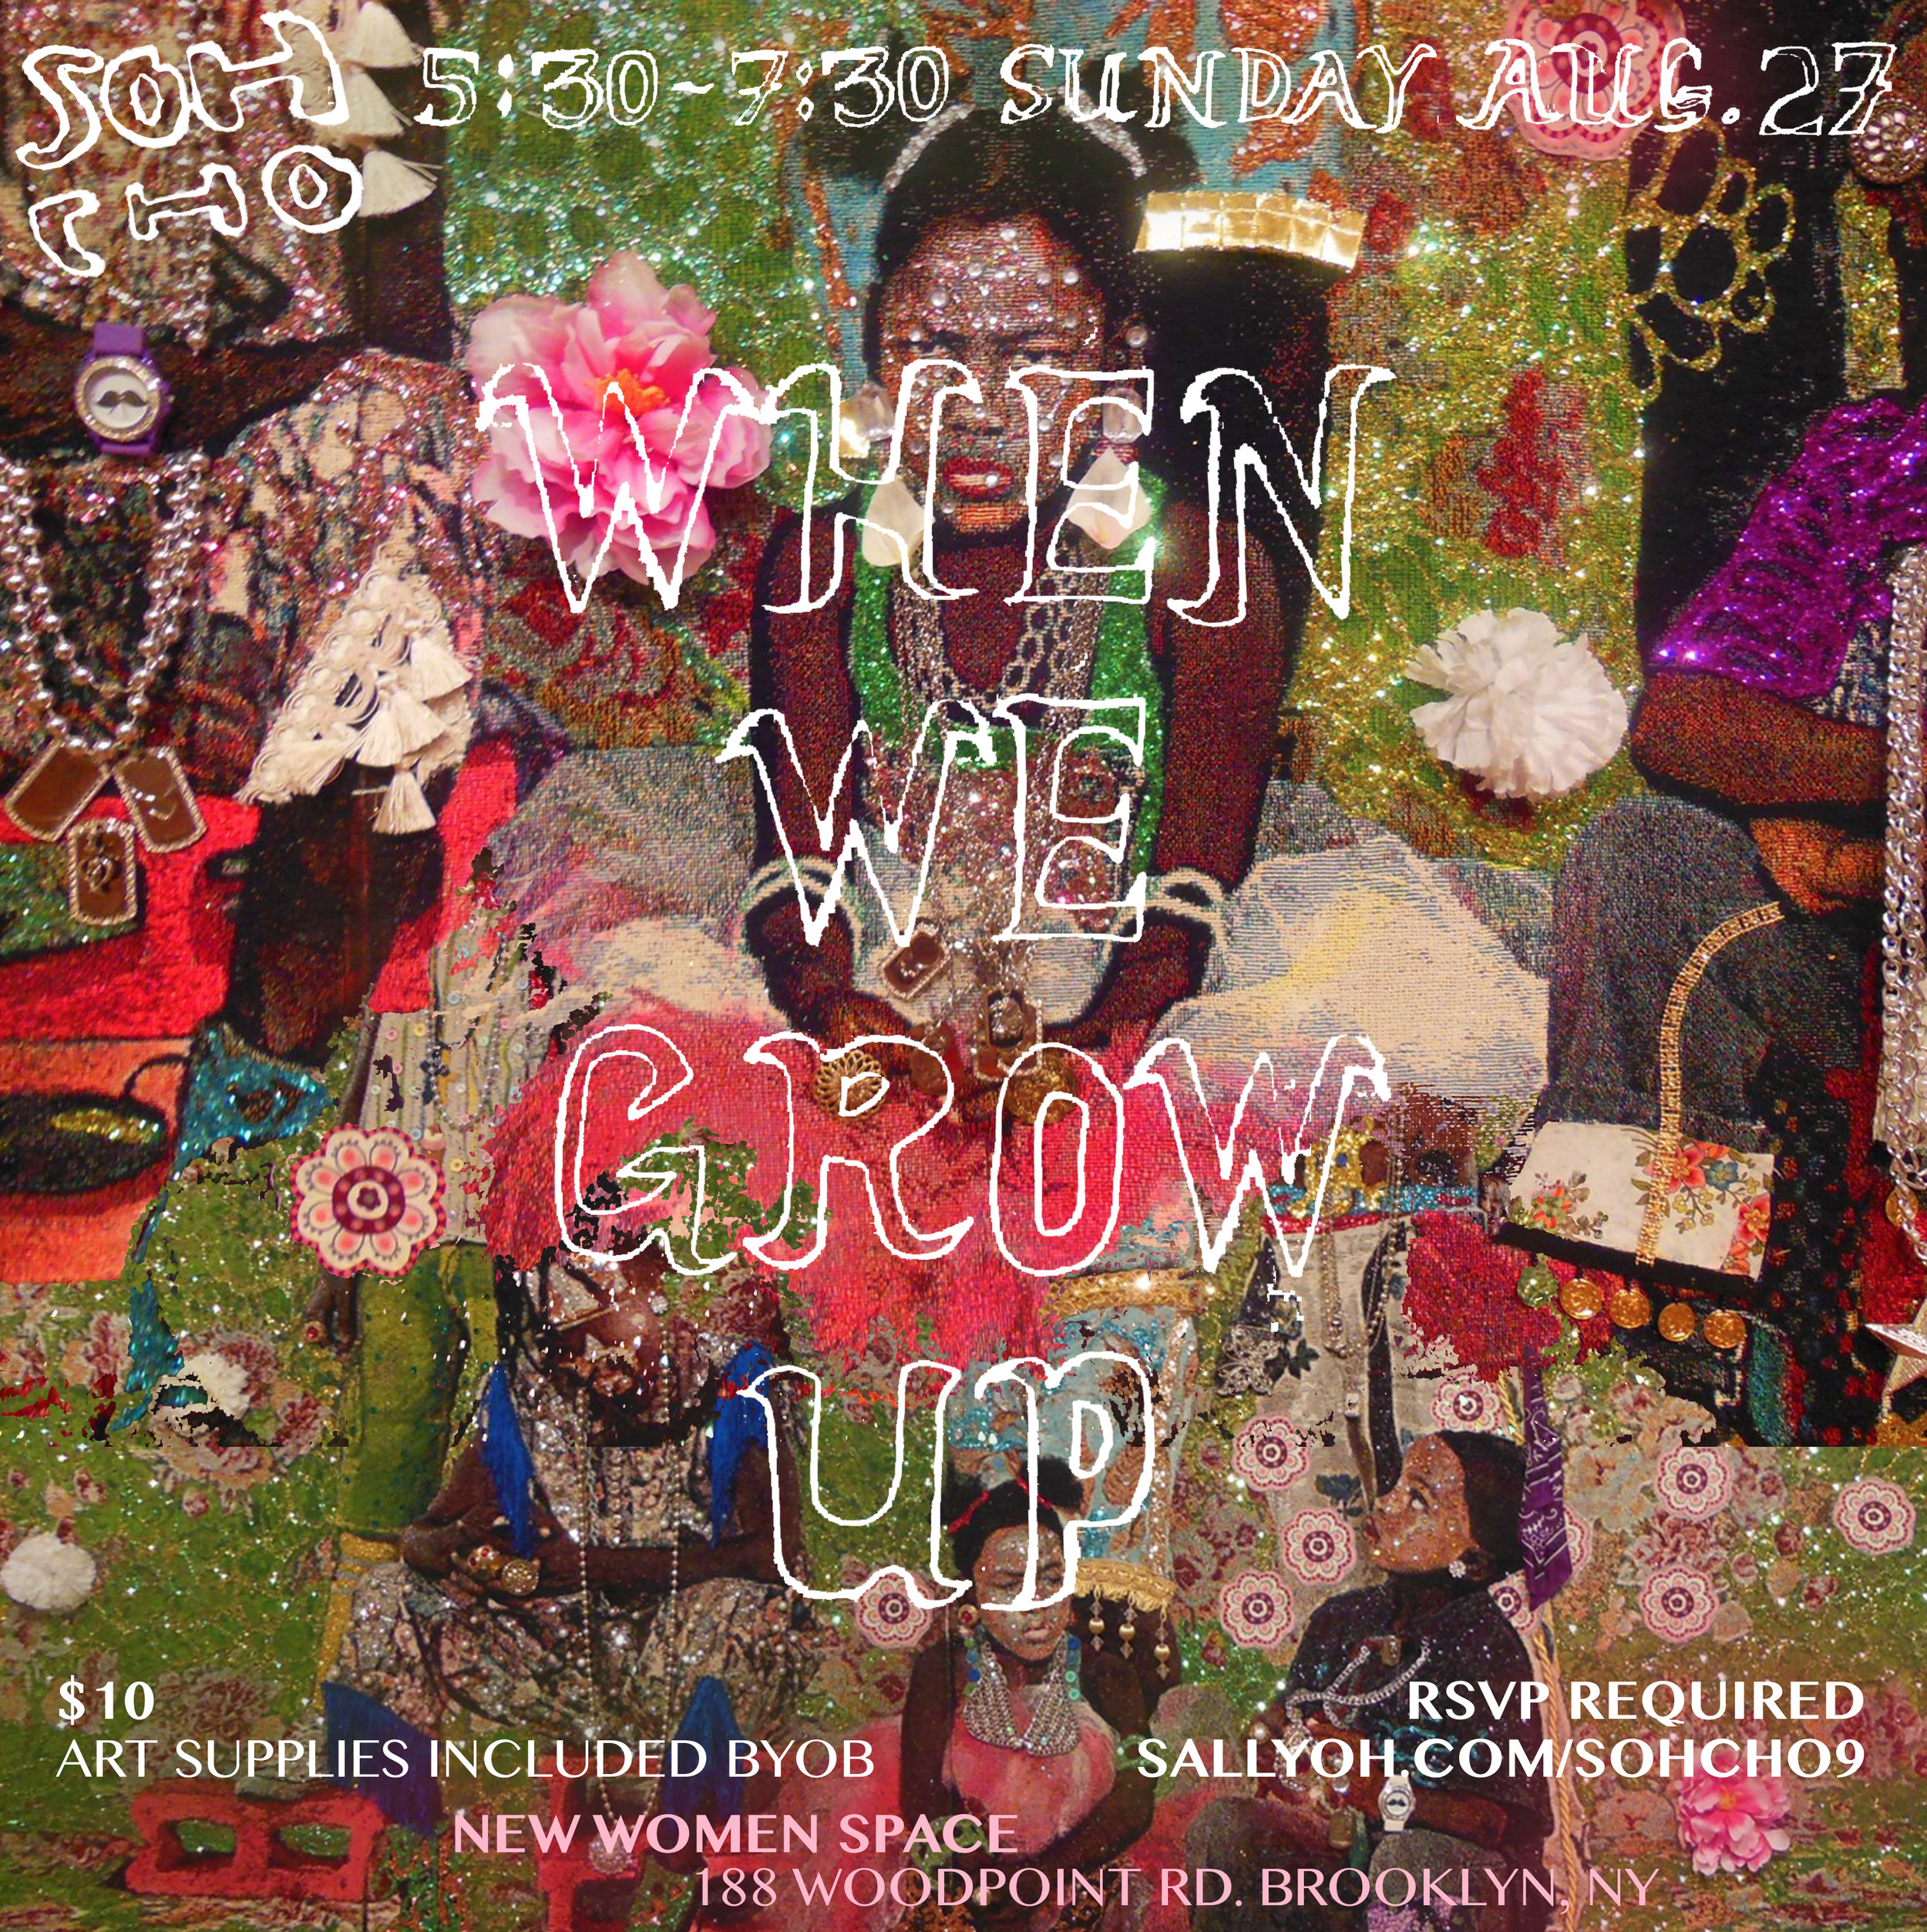 WHEN WE GROW UP [9] august27